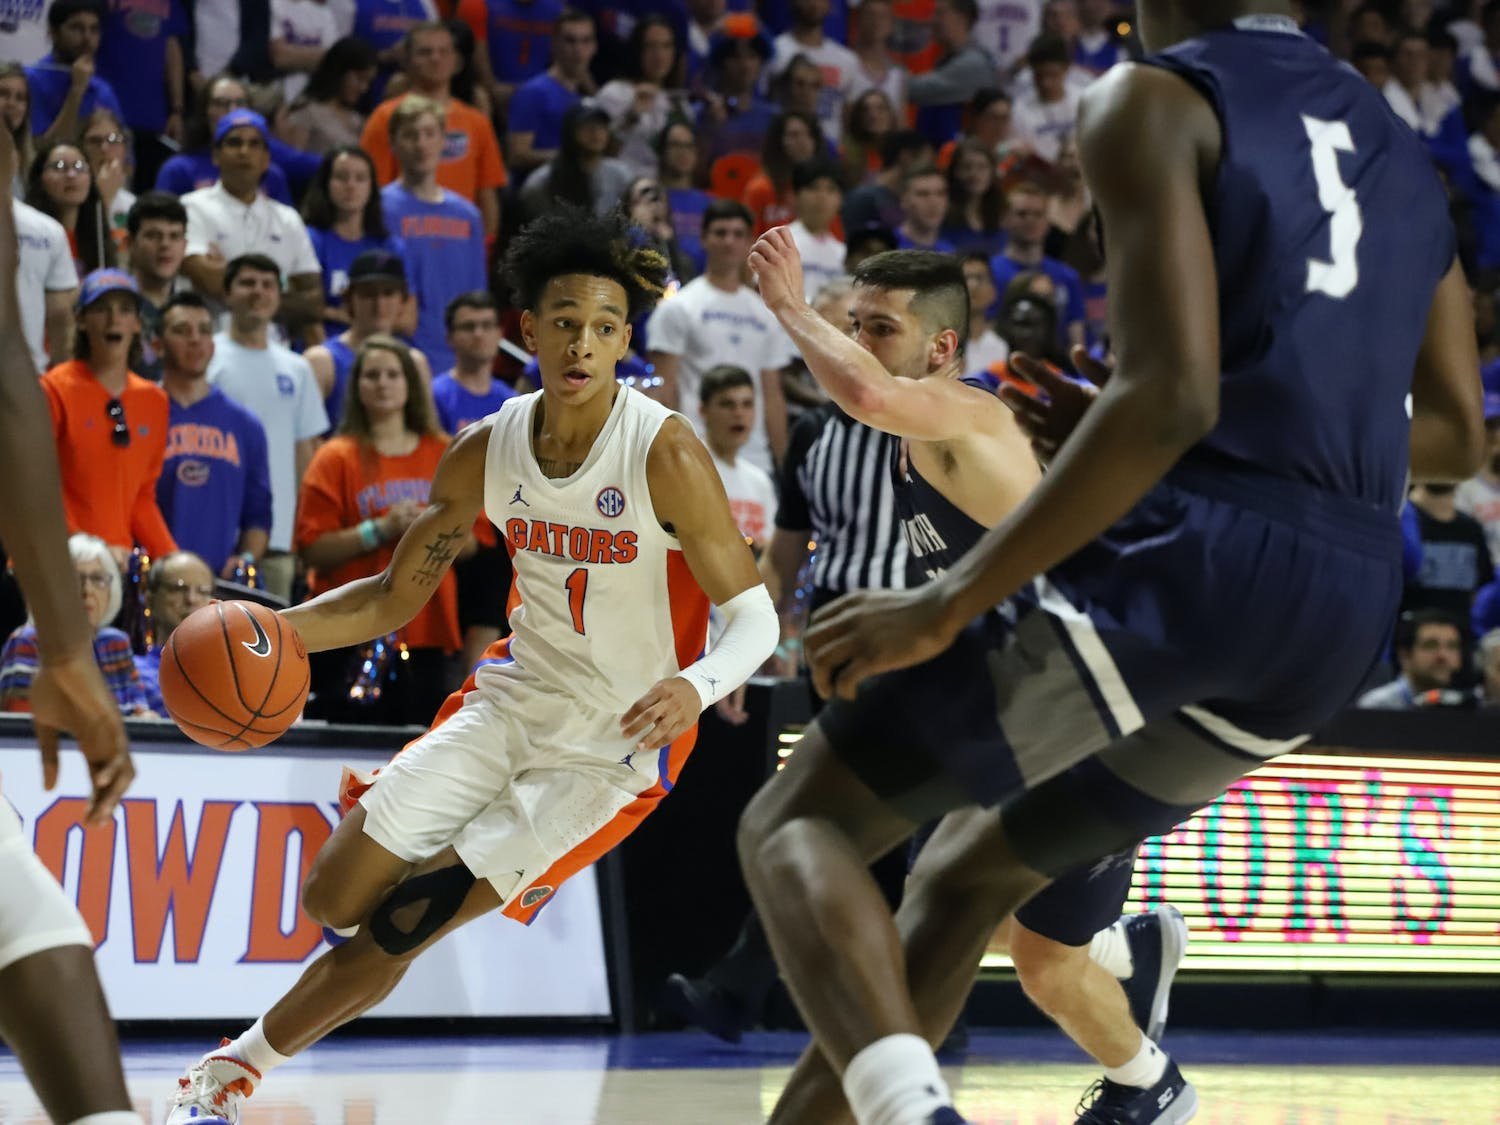 Gators guard Tre Mann finished with 17 points and eight rebounds, willing Florida to a comeback victory on Tuesday against Ole Miss